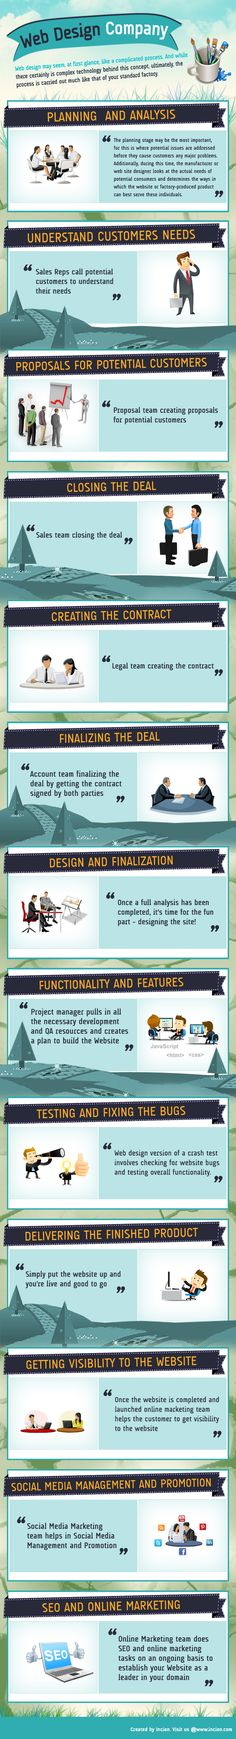 #WebDesignCompany quick innovations with quality, relevancy and uniqueness for better social and web presence online. http://mgrconsultinggroup.com